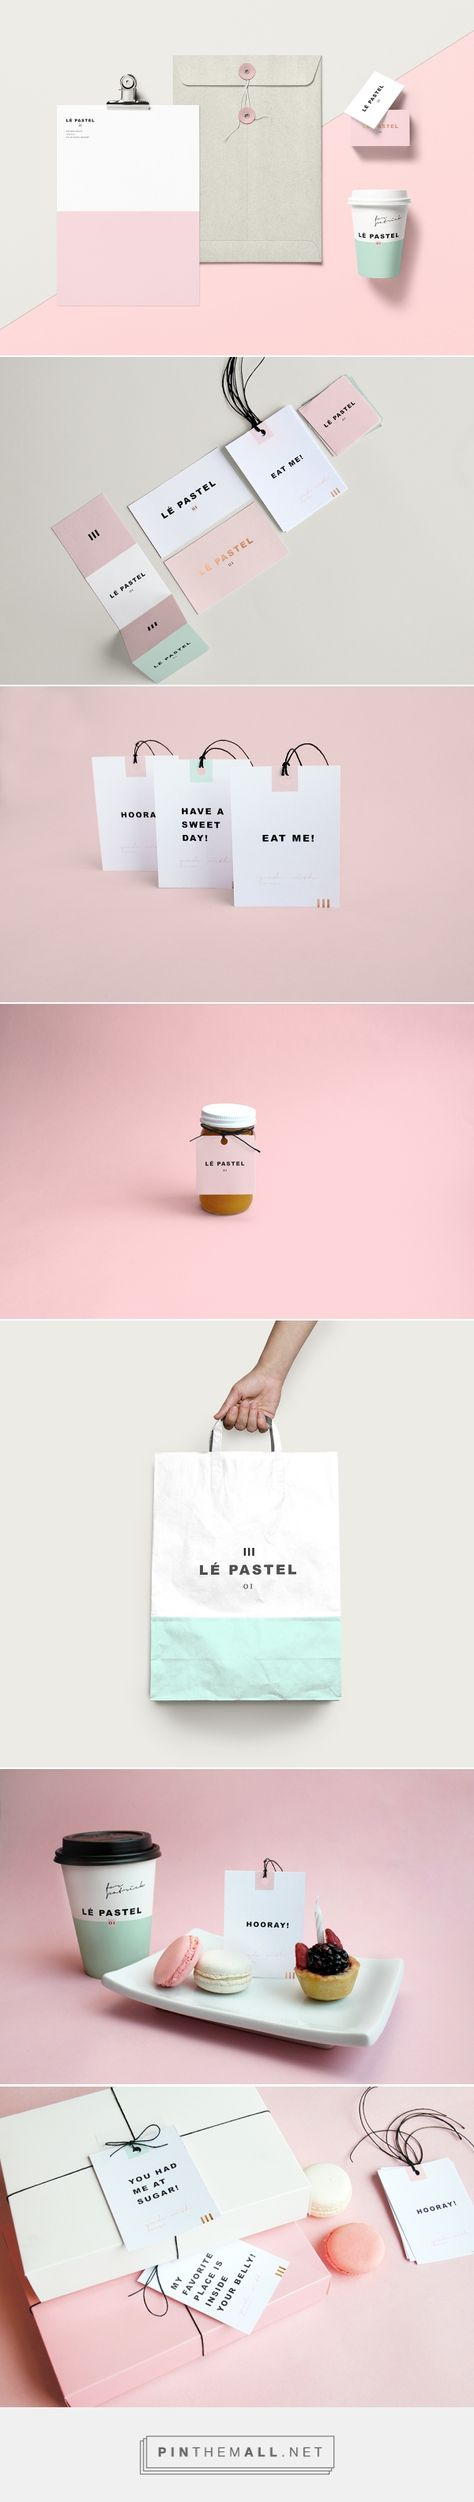 Lé Pastel on Behance curated by Packaging Diva PD. A high-end pastry shop with a variety of delicious desserts. Shop's new identity was designed with one objective, to express quality within the whole brand and each of its touch points. Art direction, packaging, branding, graphic design.